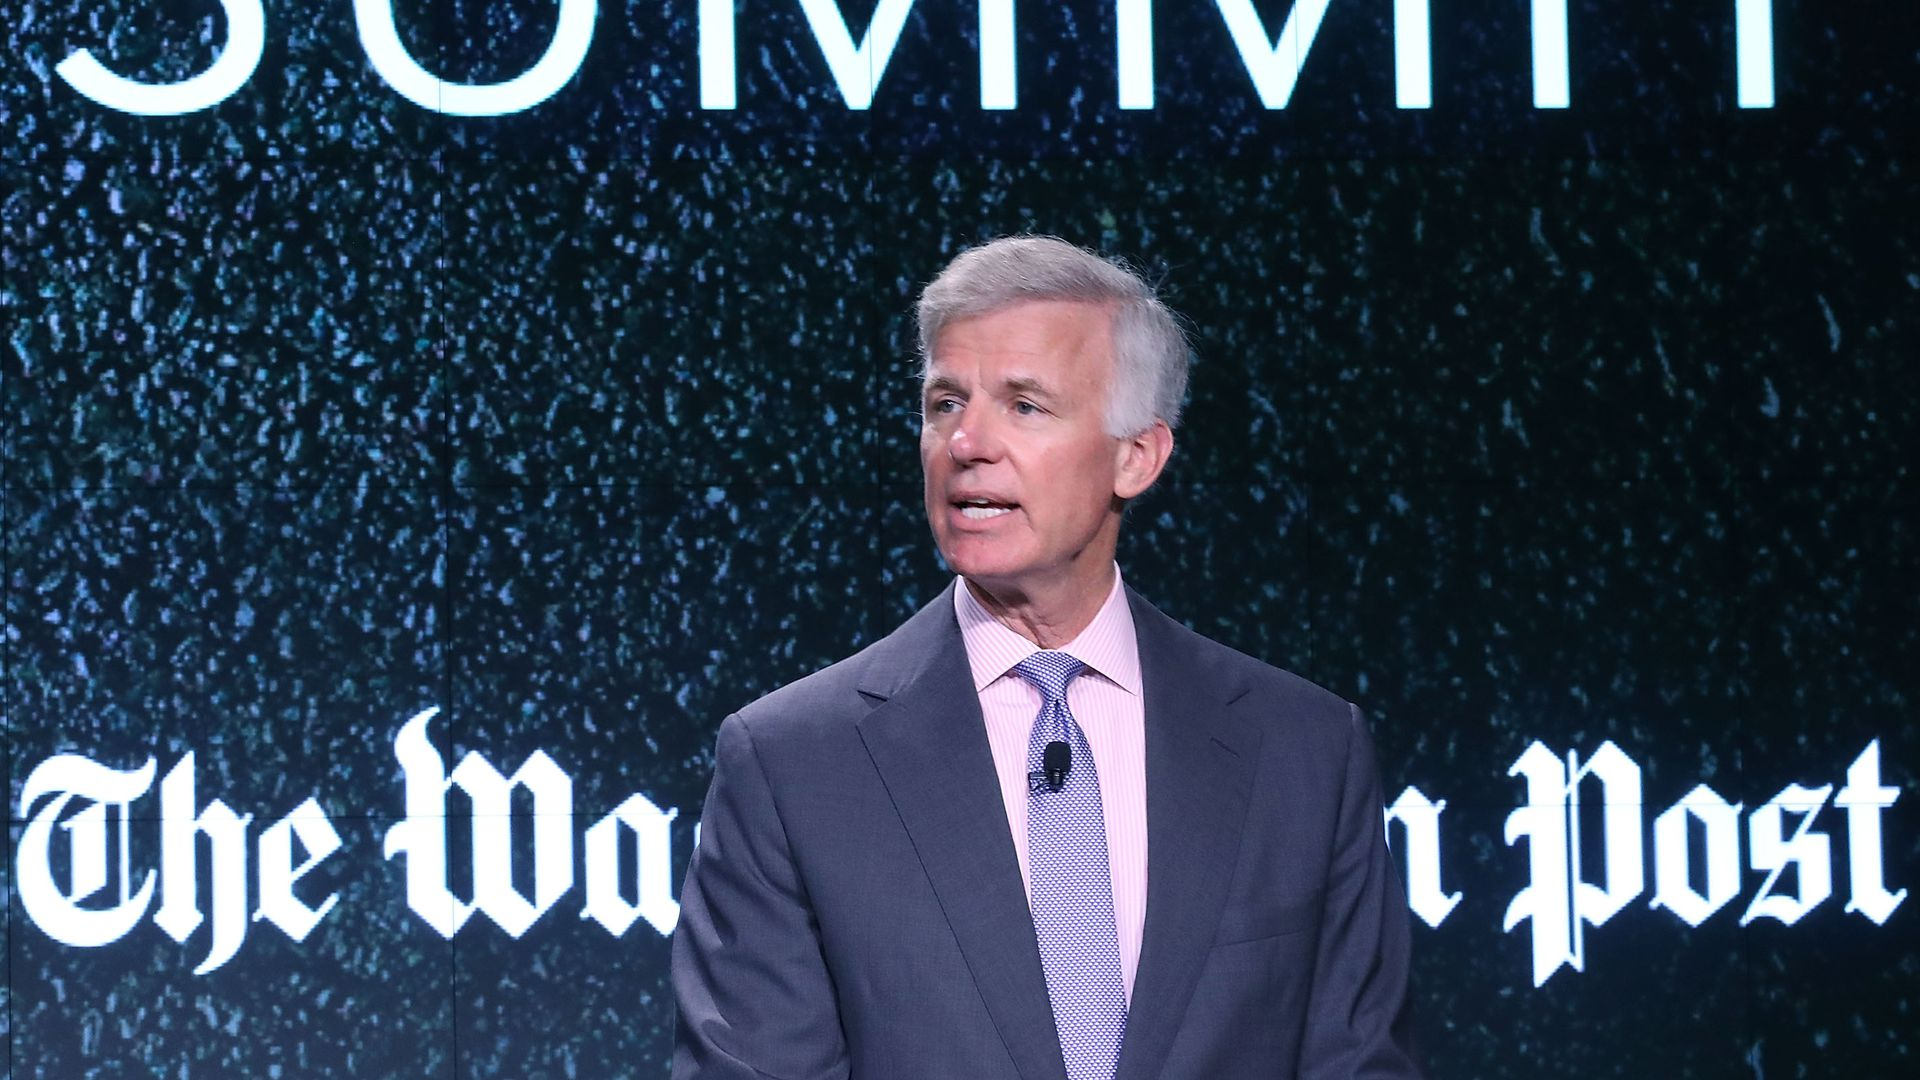 Washington Post publisher Fred Ryan